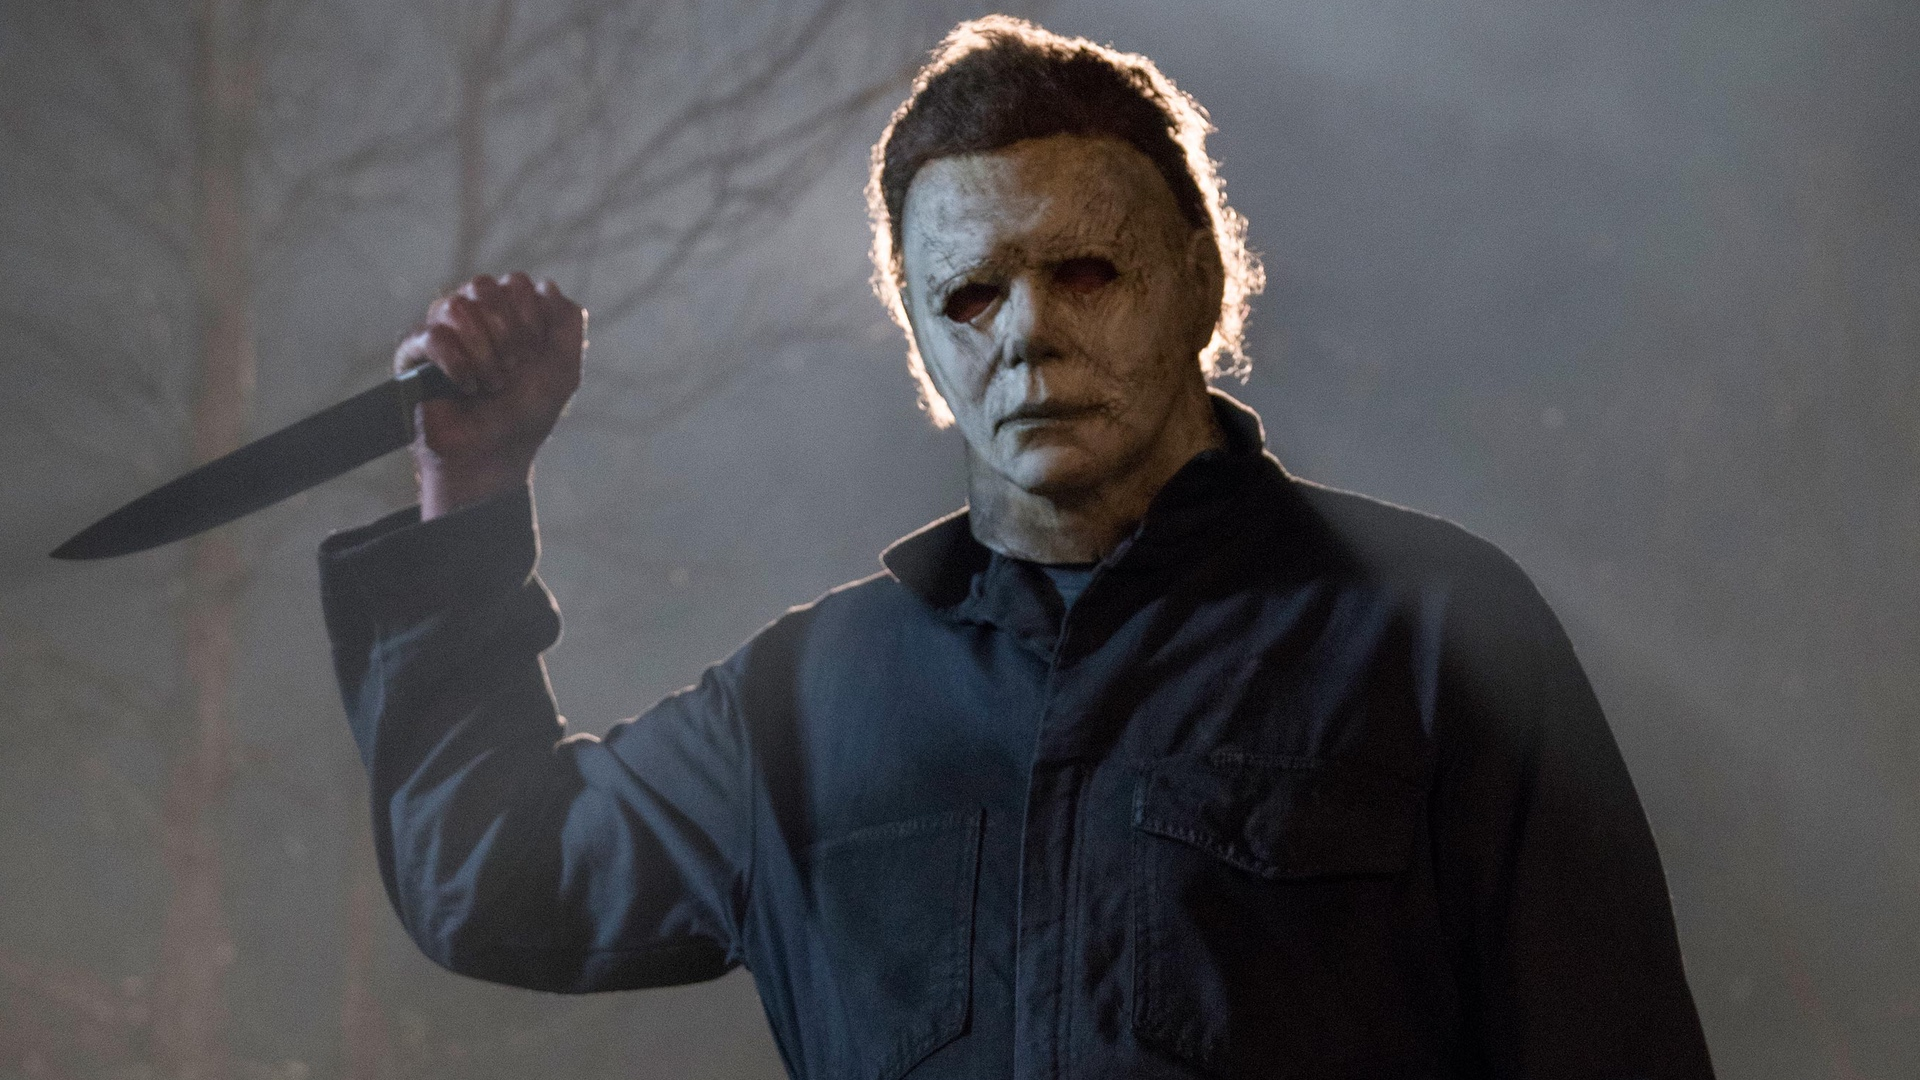 Halloween 2020 Original Michael Meyers Original Michael Myers Actor Nick Castle Shares Funny Video of Him